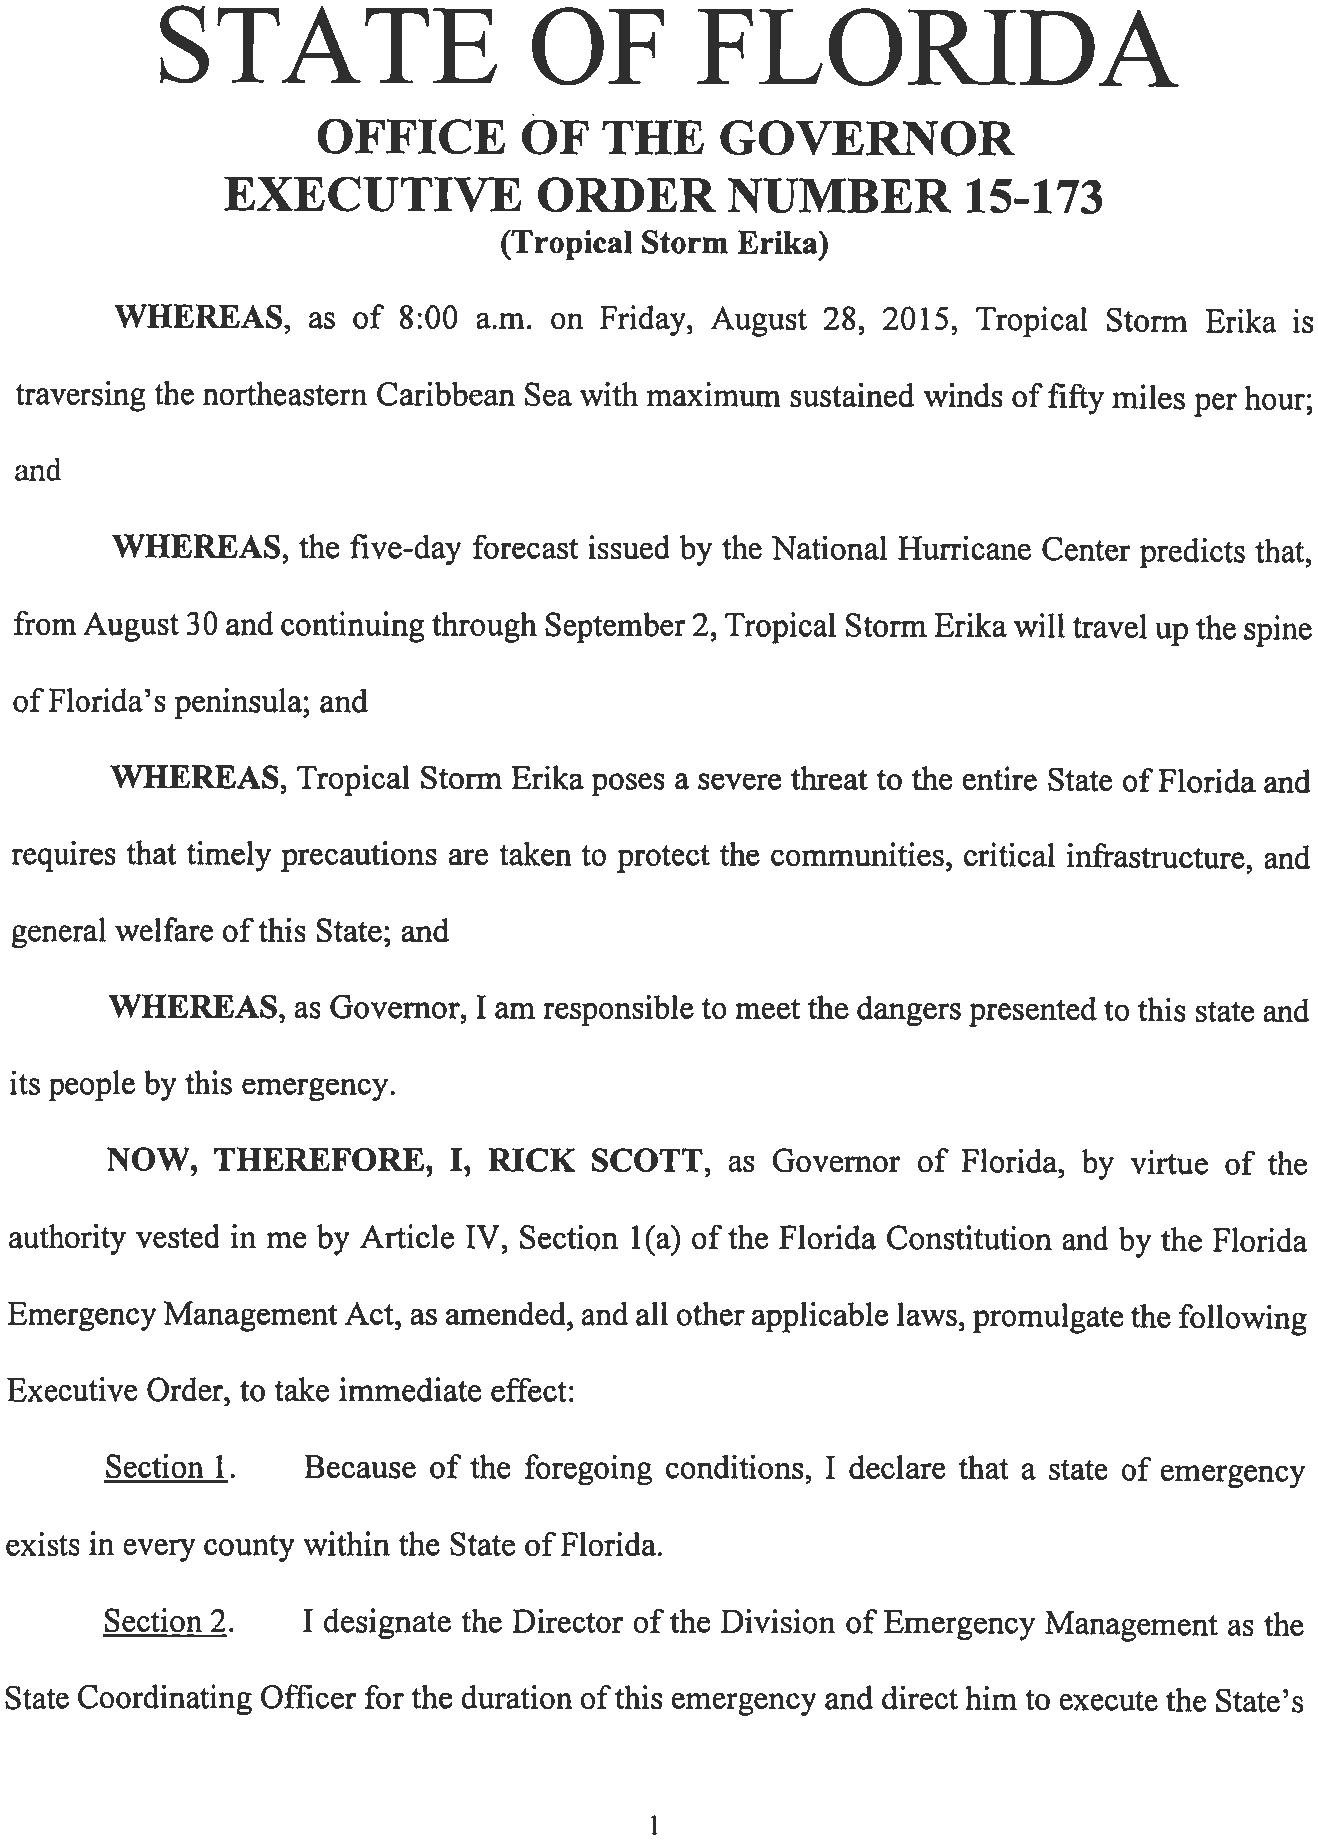 state emergency florida erika, state of emergency declared in florida, state of emergency florida due to erika, state of emergency florida torpical storm erika